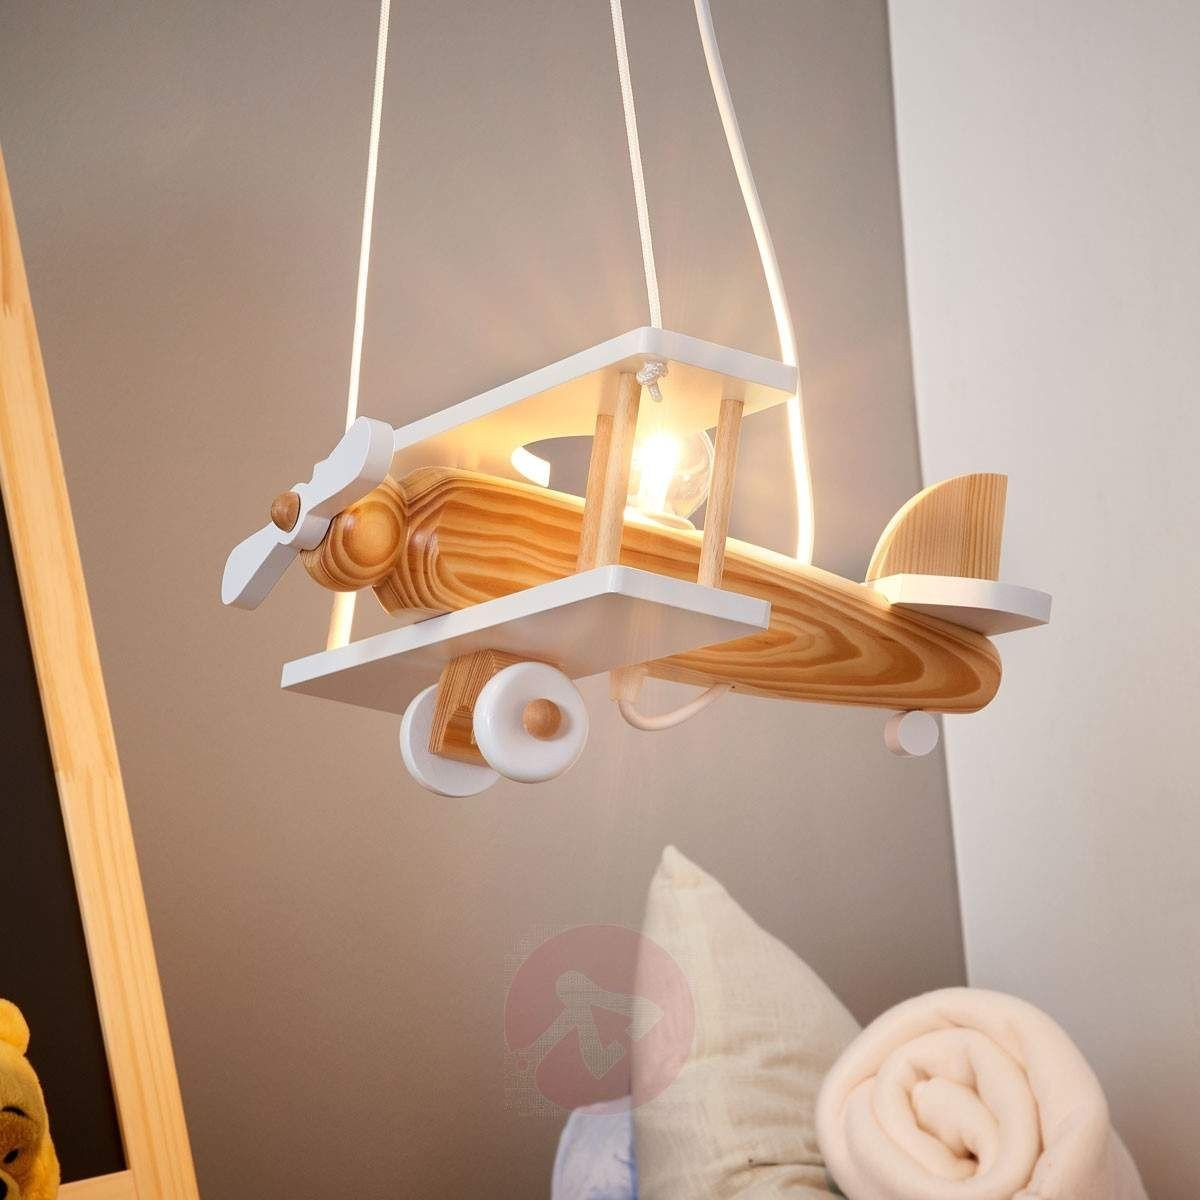 Kids Bedroom Ceiling Light Elegant Wooden Aeroplane Ceiling Light